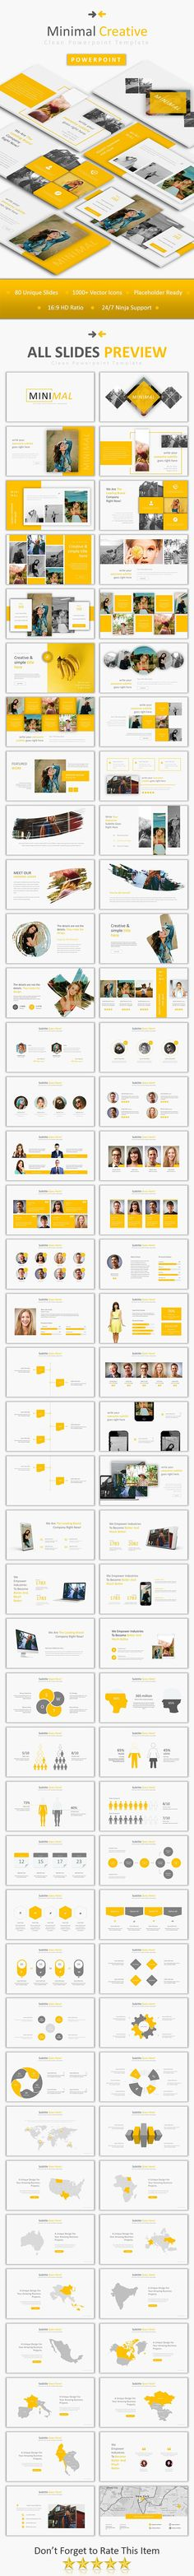 uc0c1 ud07c uc0c1 ud07c  ud30c uc6cc ud3ec uc778 ud2b8  ud15c ud50c ub9bf  ubb34 ub8cc  ub2e4 uc6b4 ub85c ub4dc  free powerpoint template download